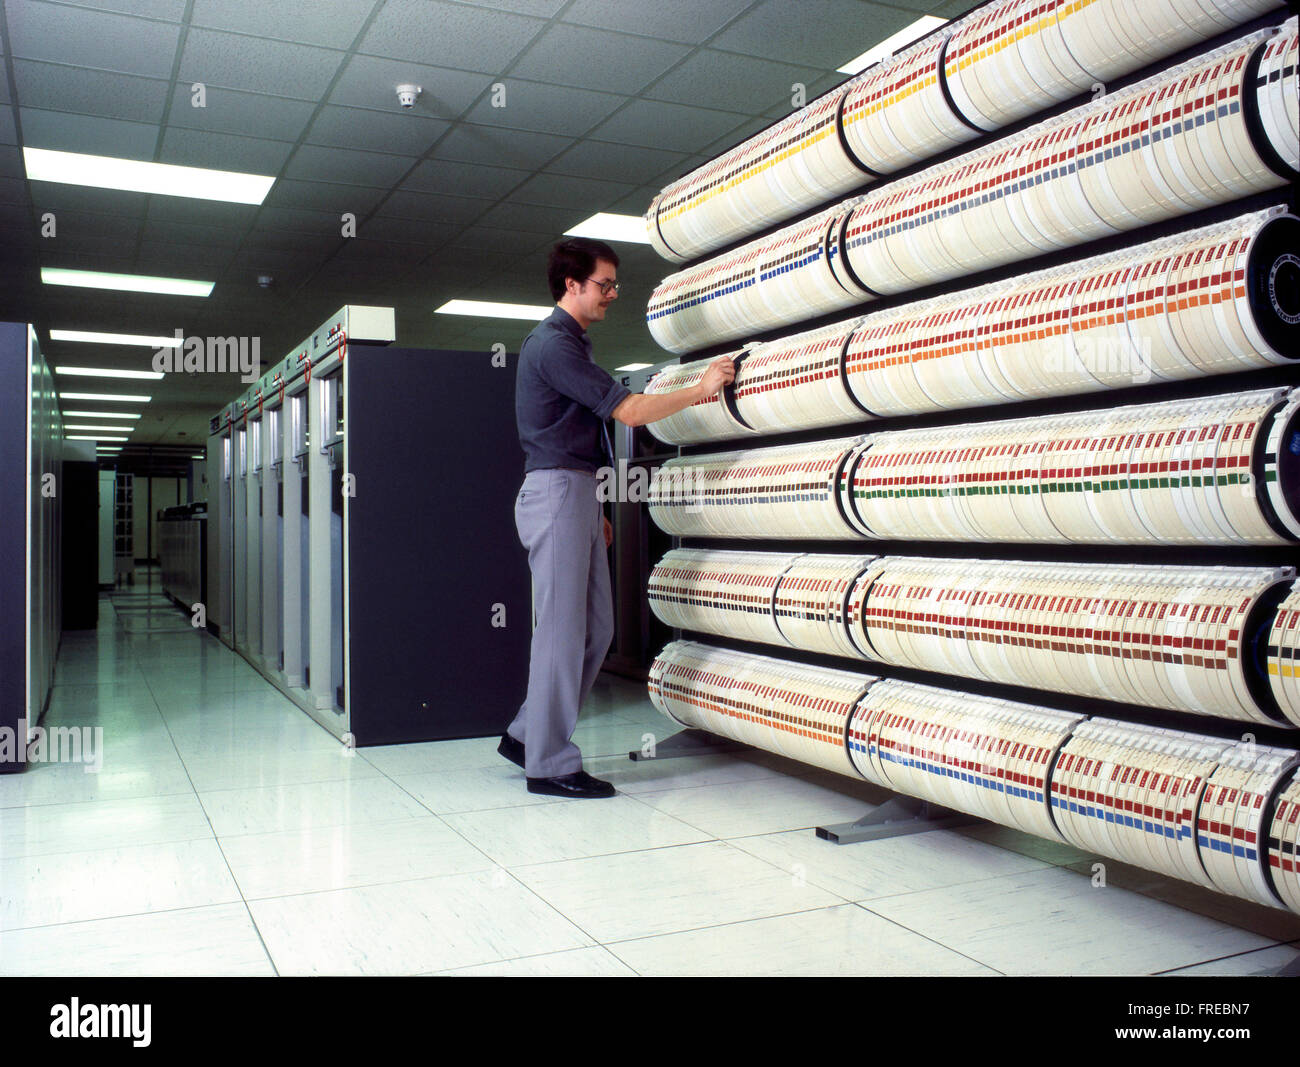 Magnetic tape drive storage for early computer mainframe system - Stock Image